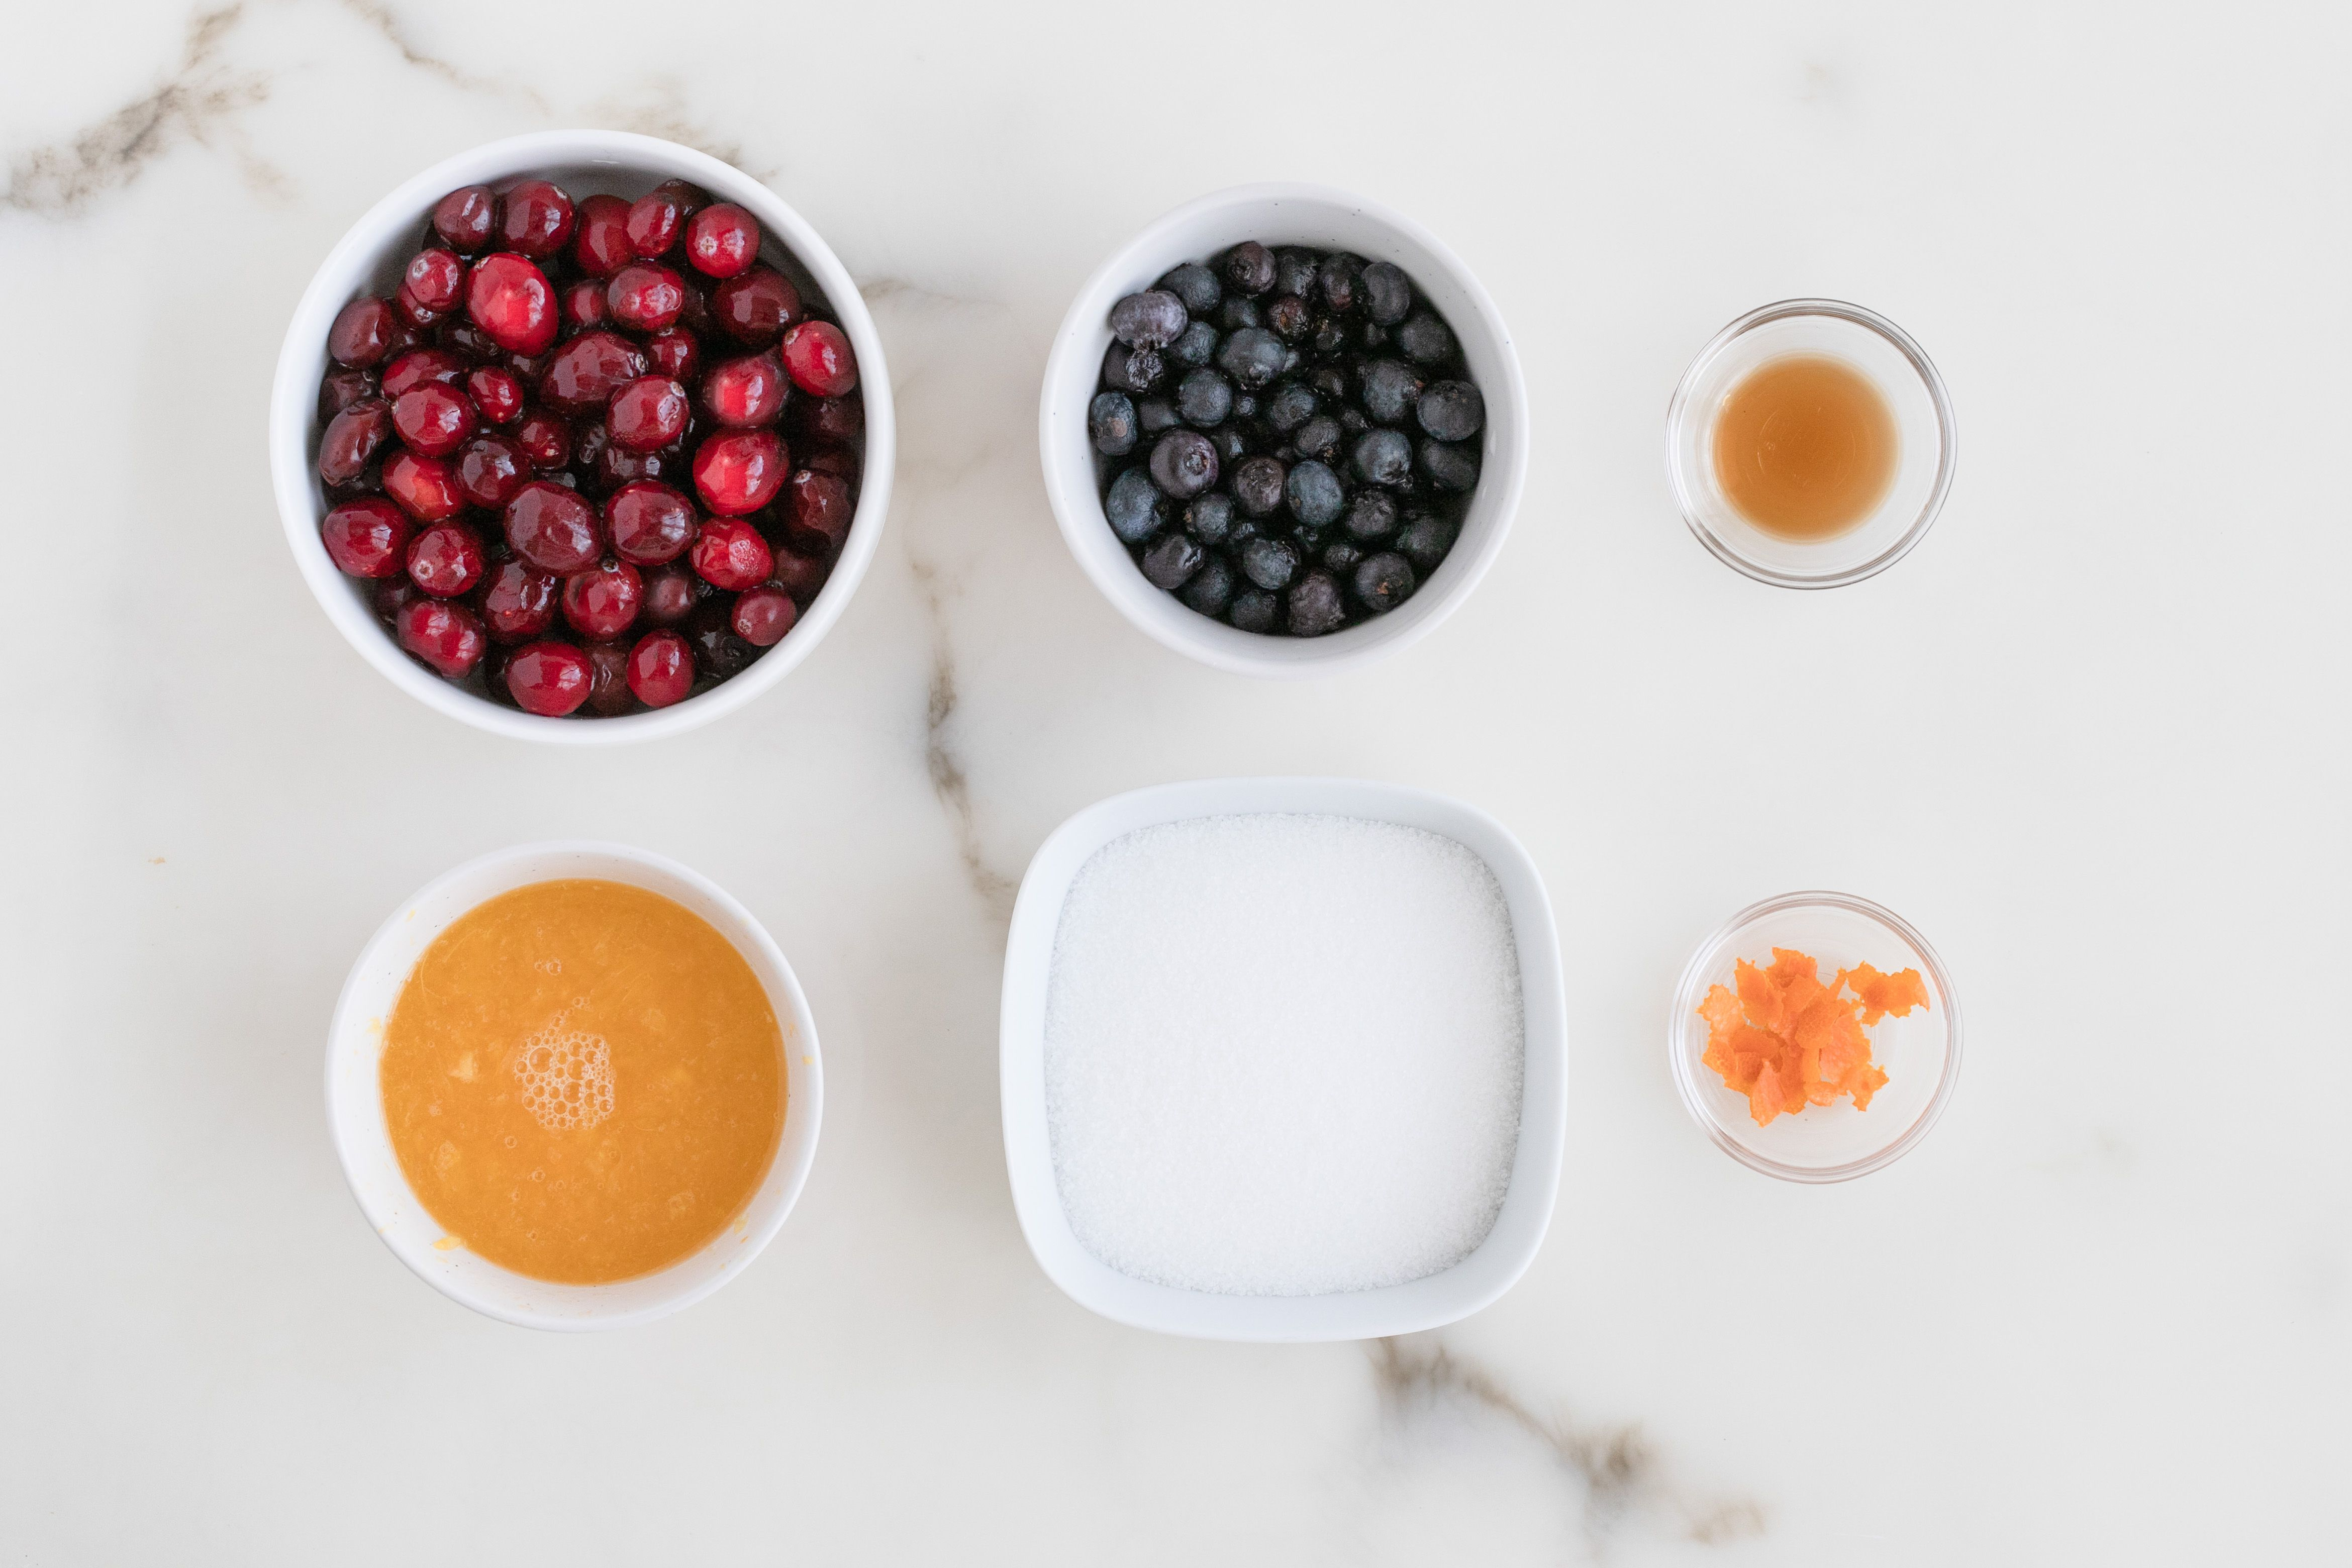 Ingredients for cranberry sauce with blueberries